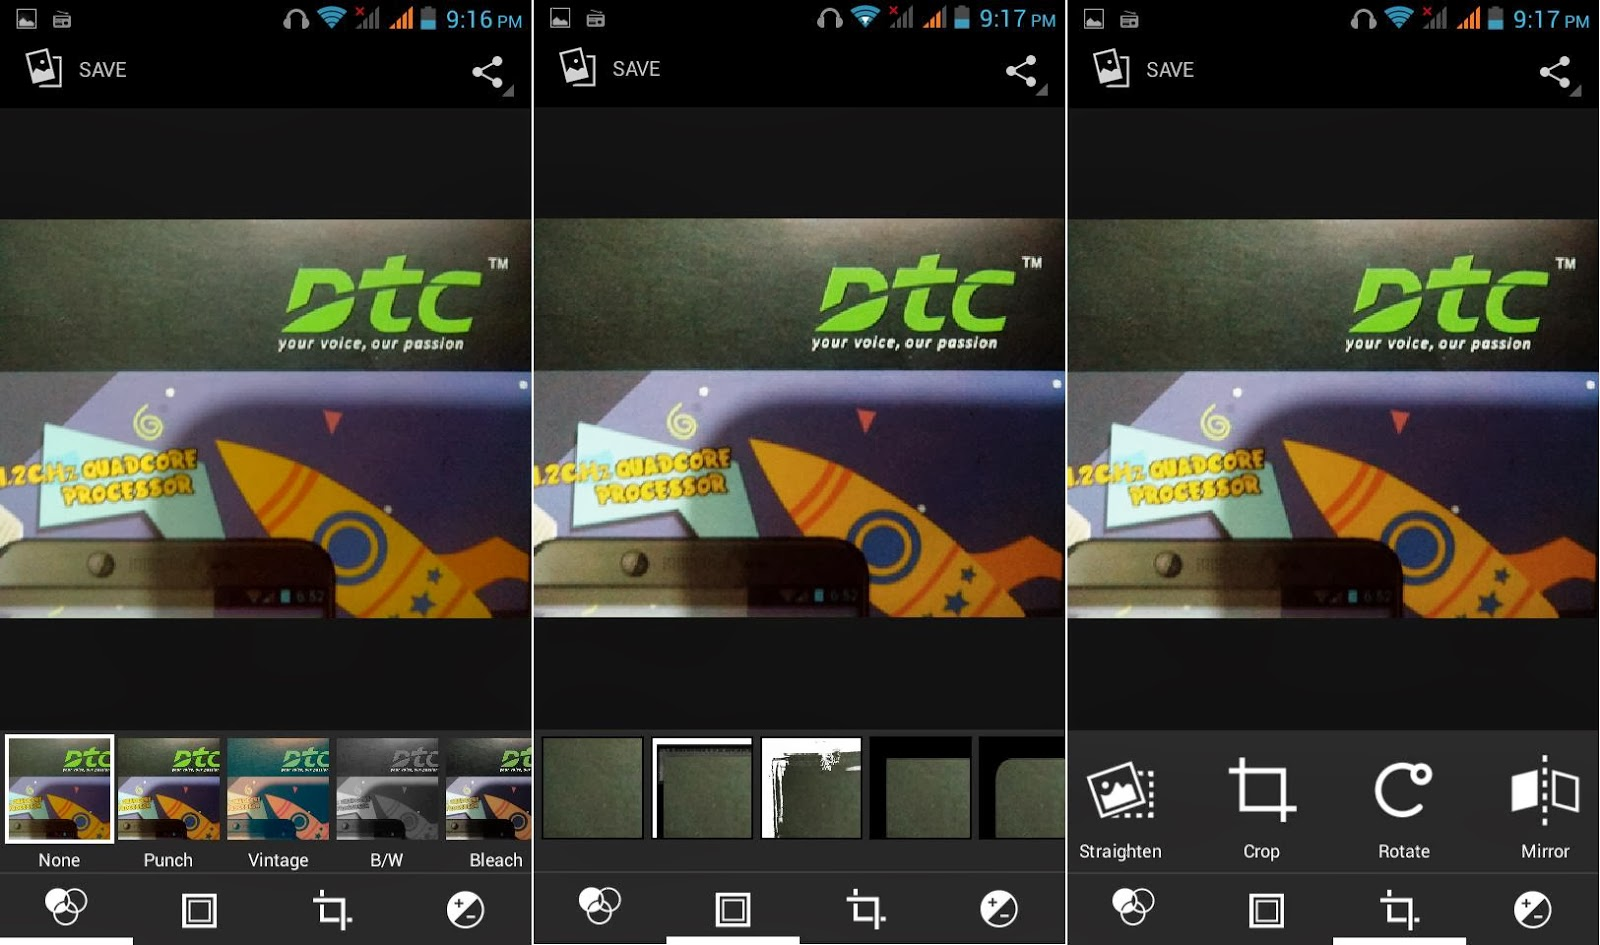 DTC Mobile GT15 Astroid Fiesta Photo Editor